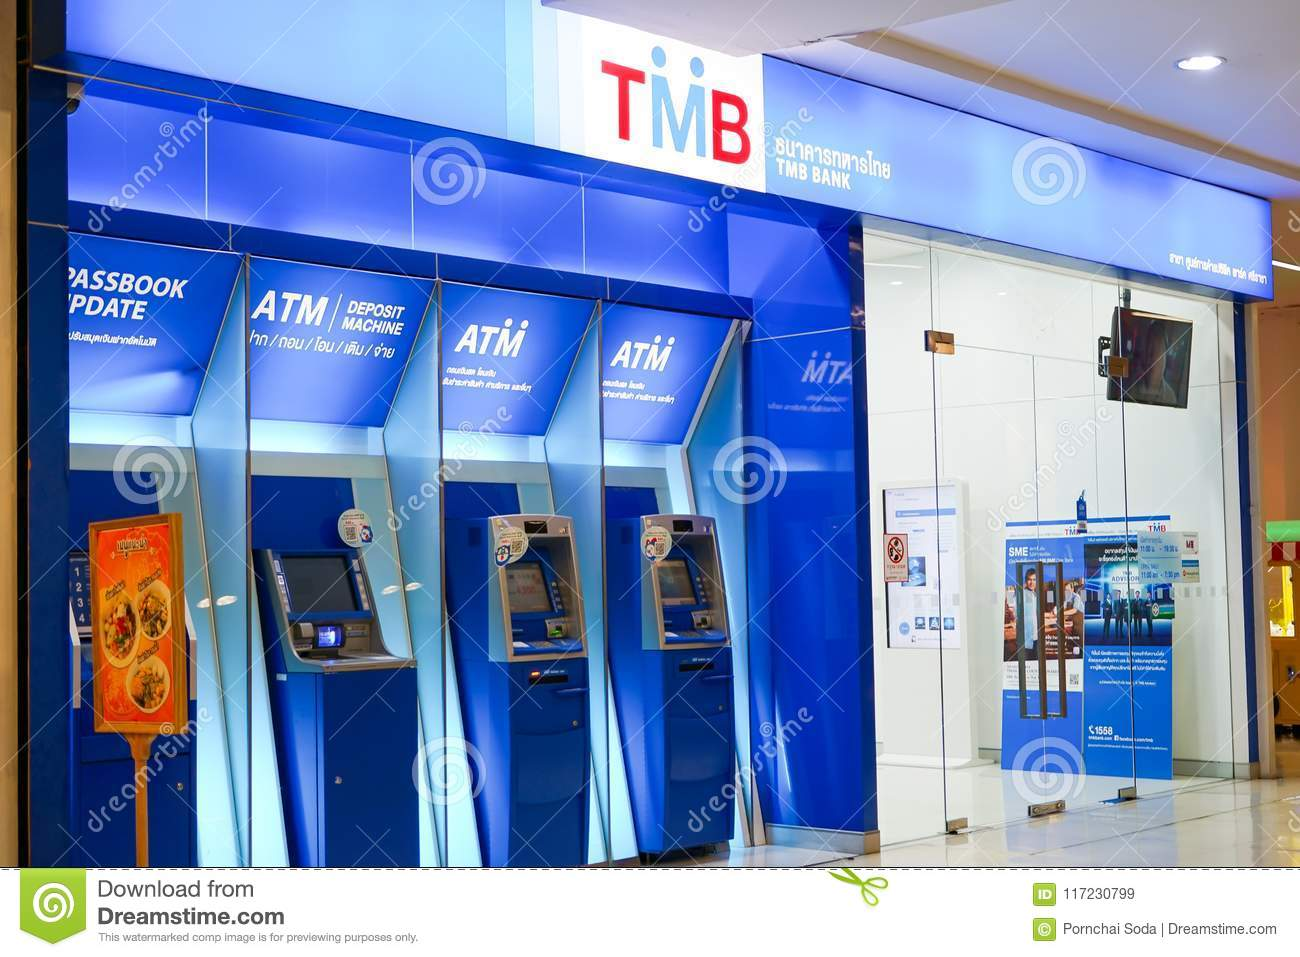 Chonburi, Thailand, FEB 2018 : ATM Banking service for financial transaction in the shopping mall